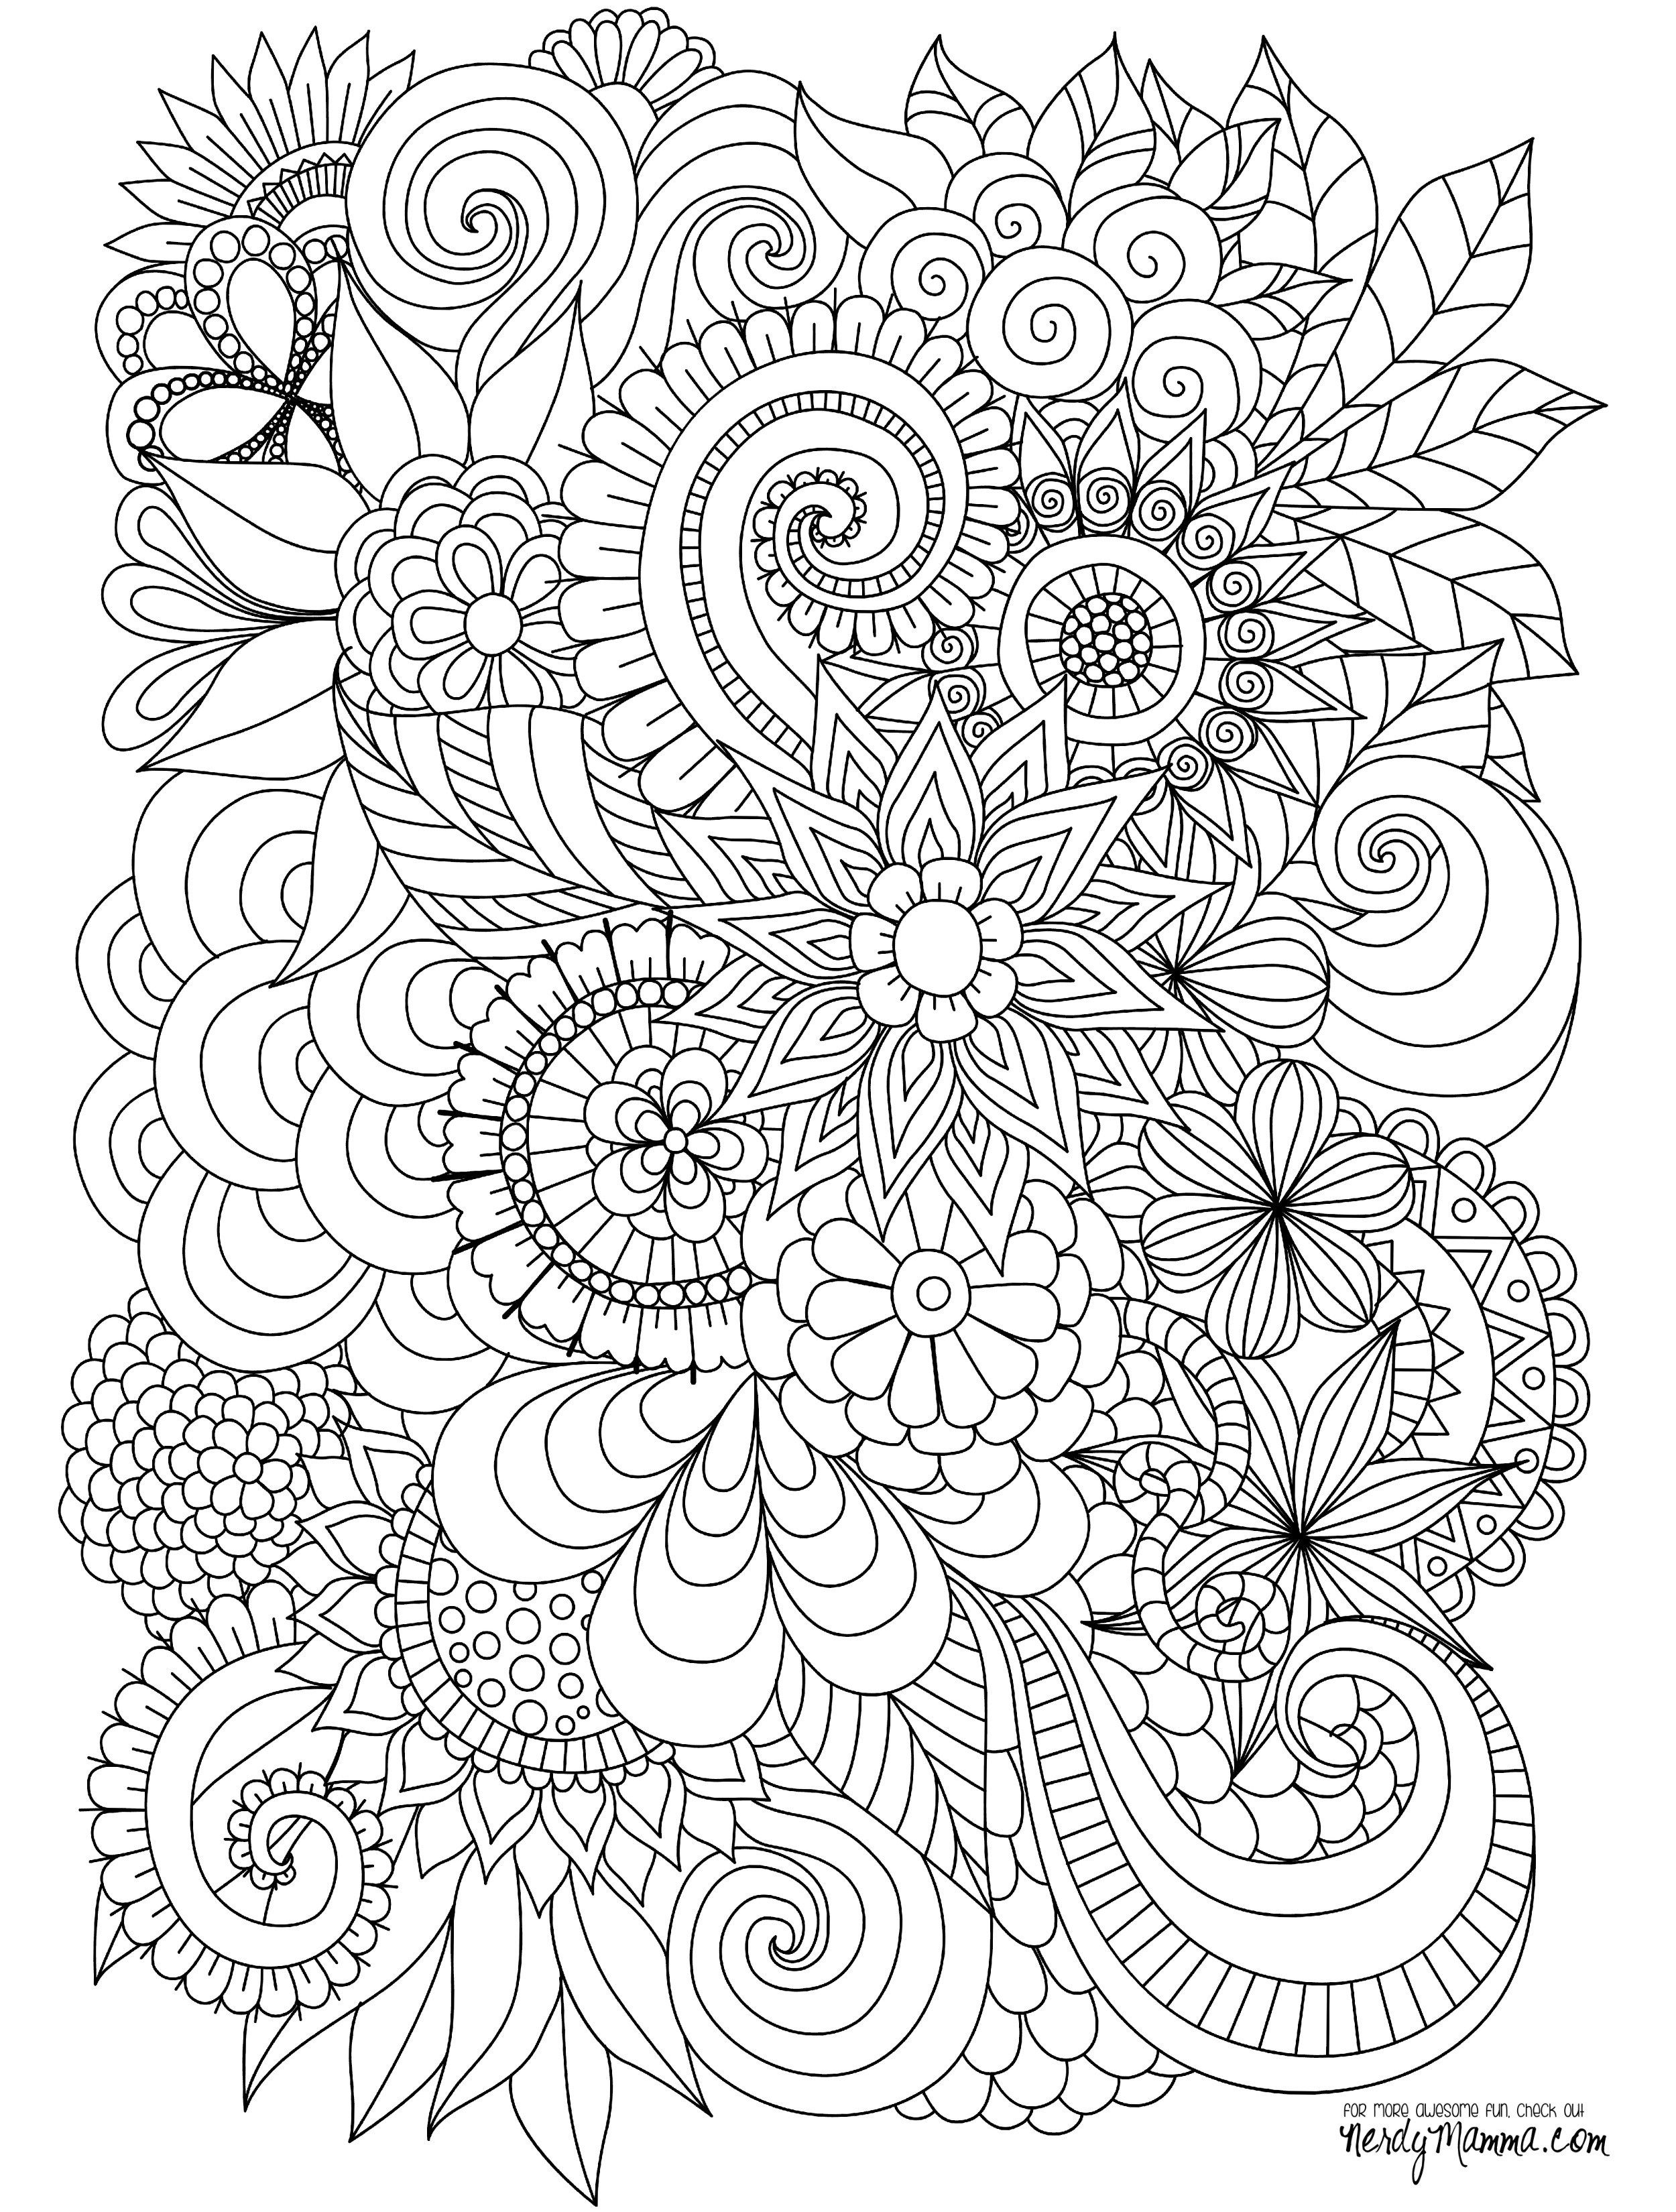 2500x3300 Illinois State Flower Coloring Page New Coloring Sheets